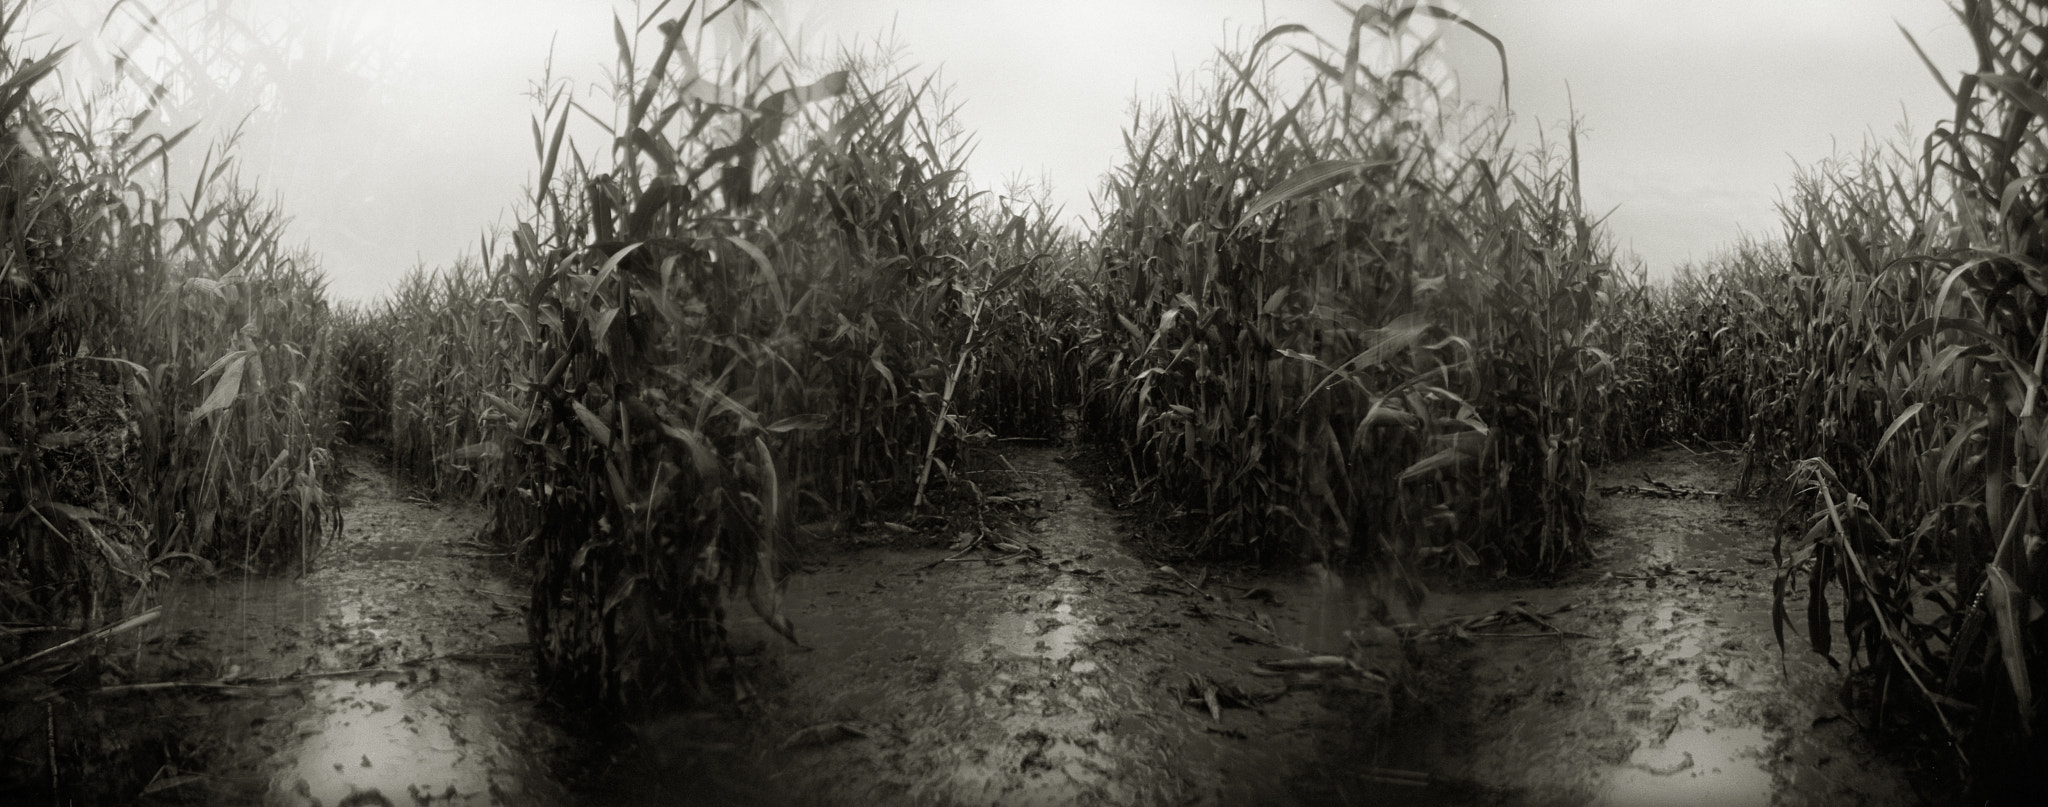 Photograph In a Corn Maze, Sauvie Island by Austin Granger on 500px